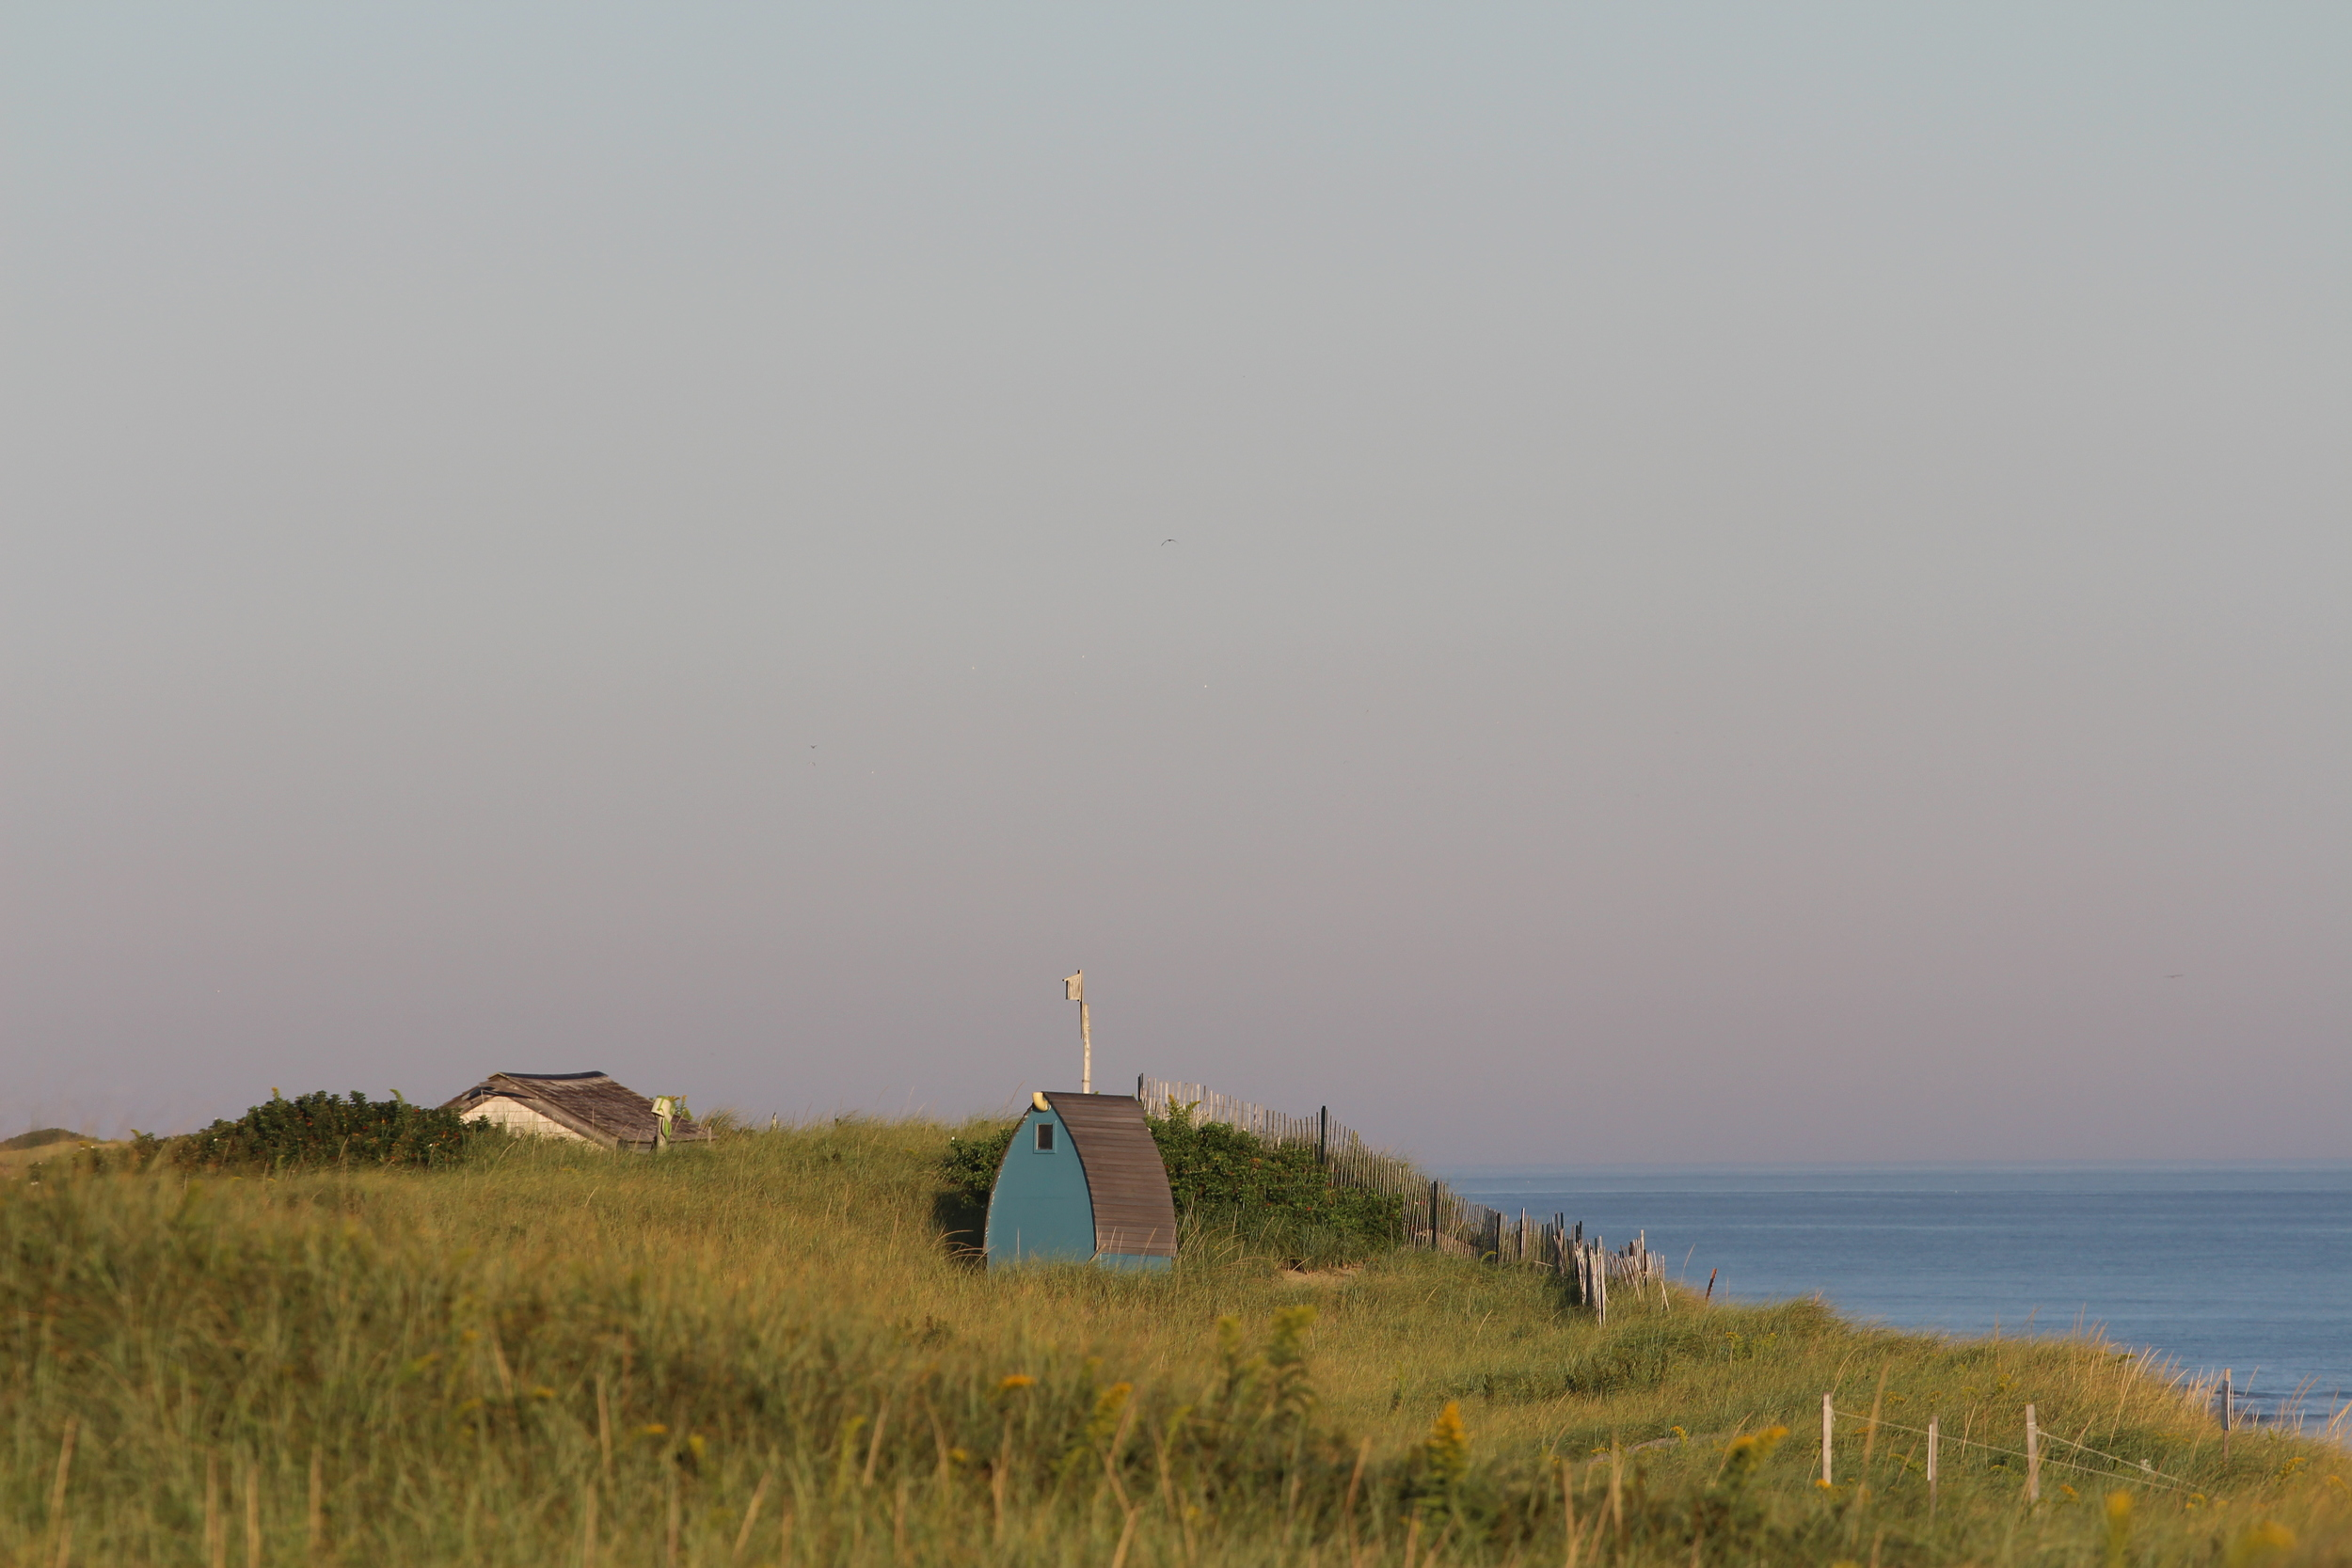 Other shacks appear like this, peaking over the dune grass.  They remind me of Smurf Houses.